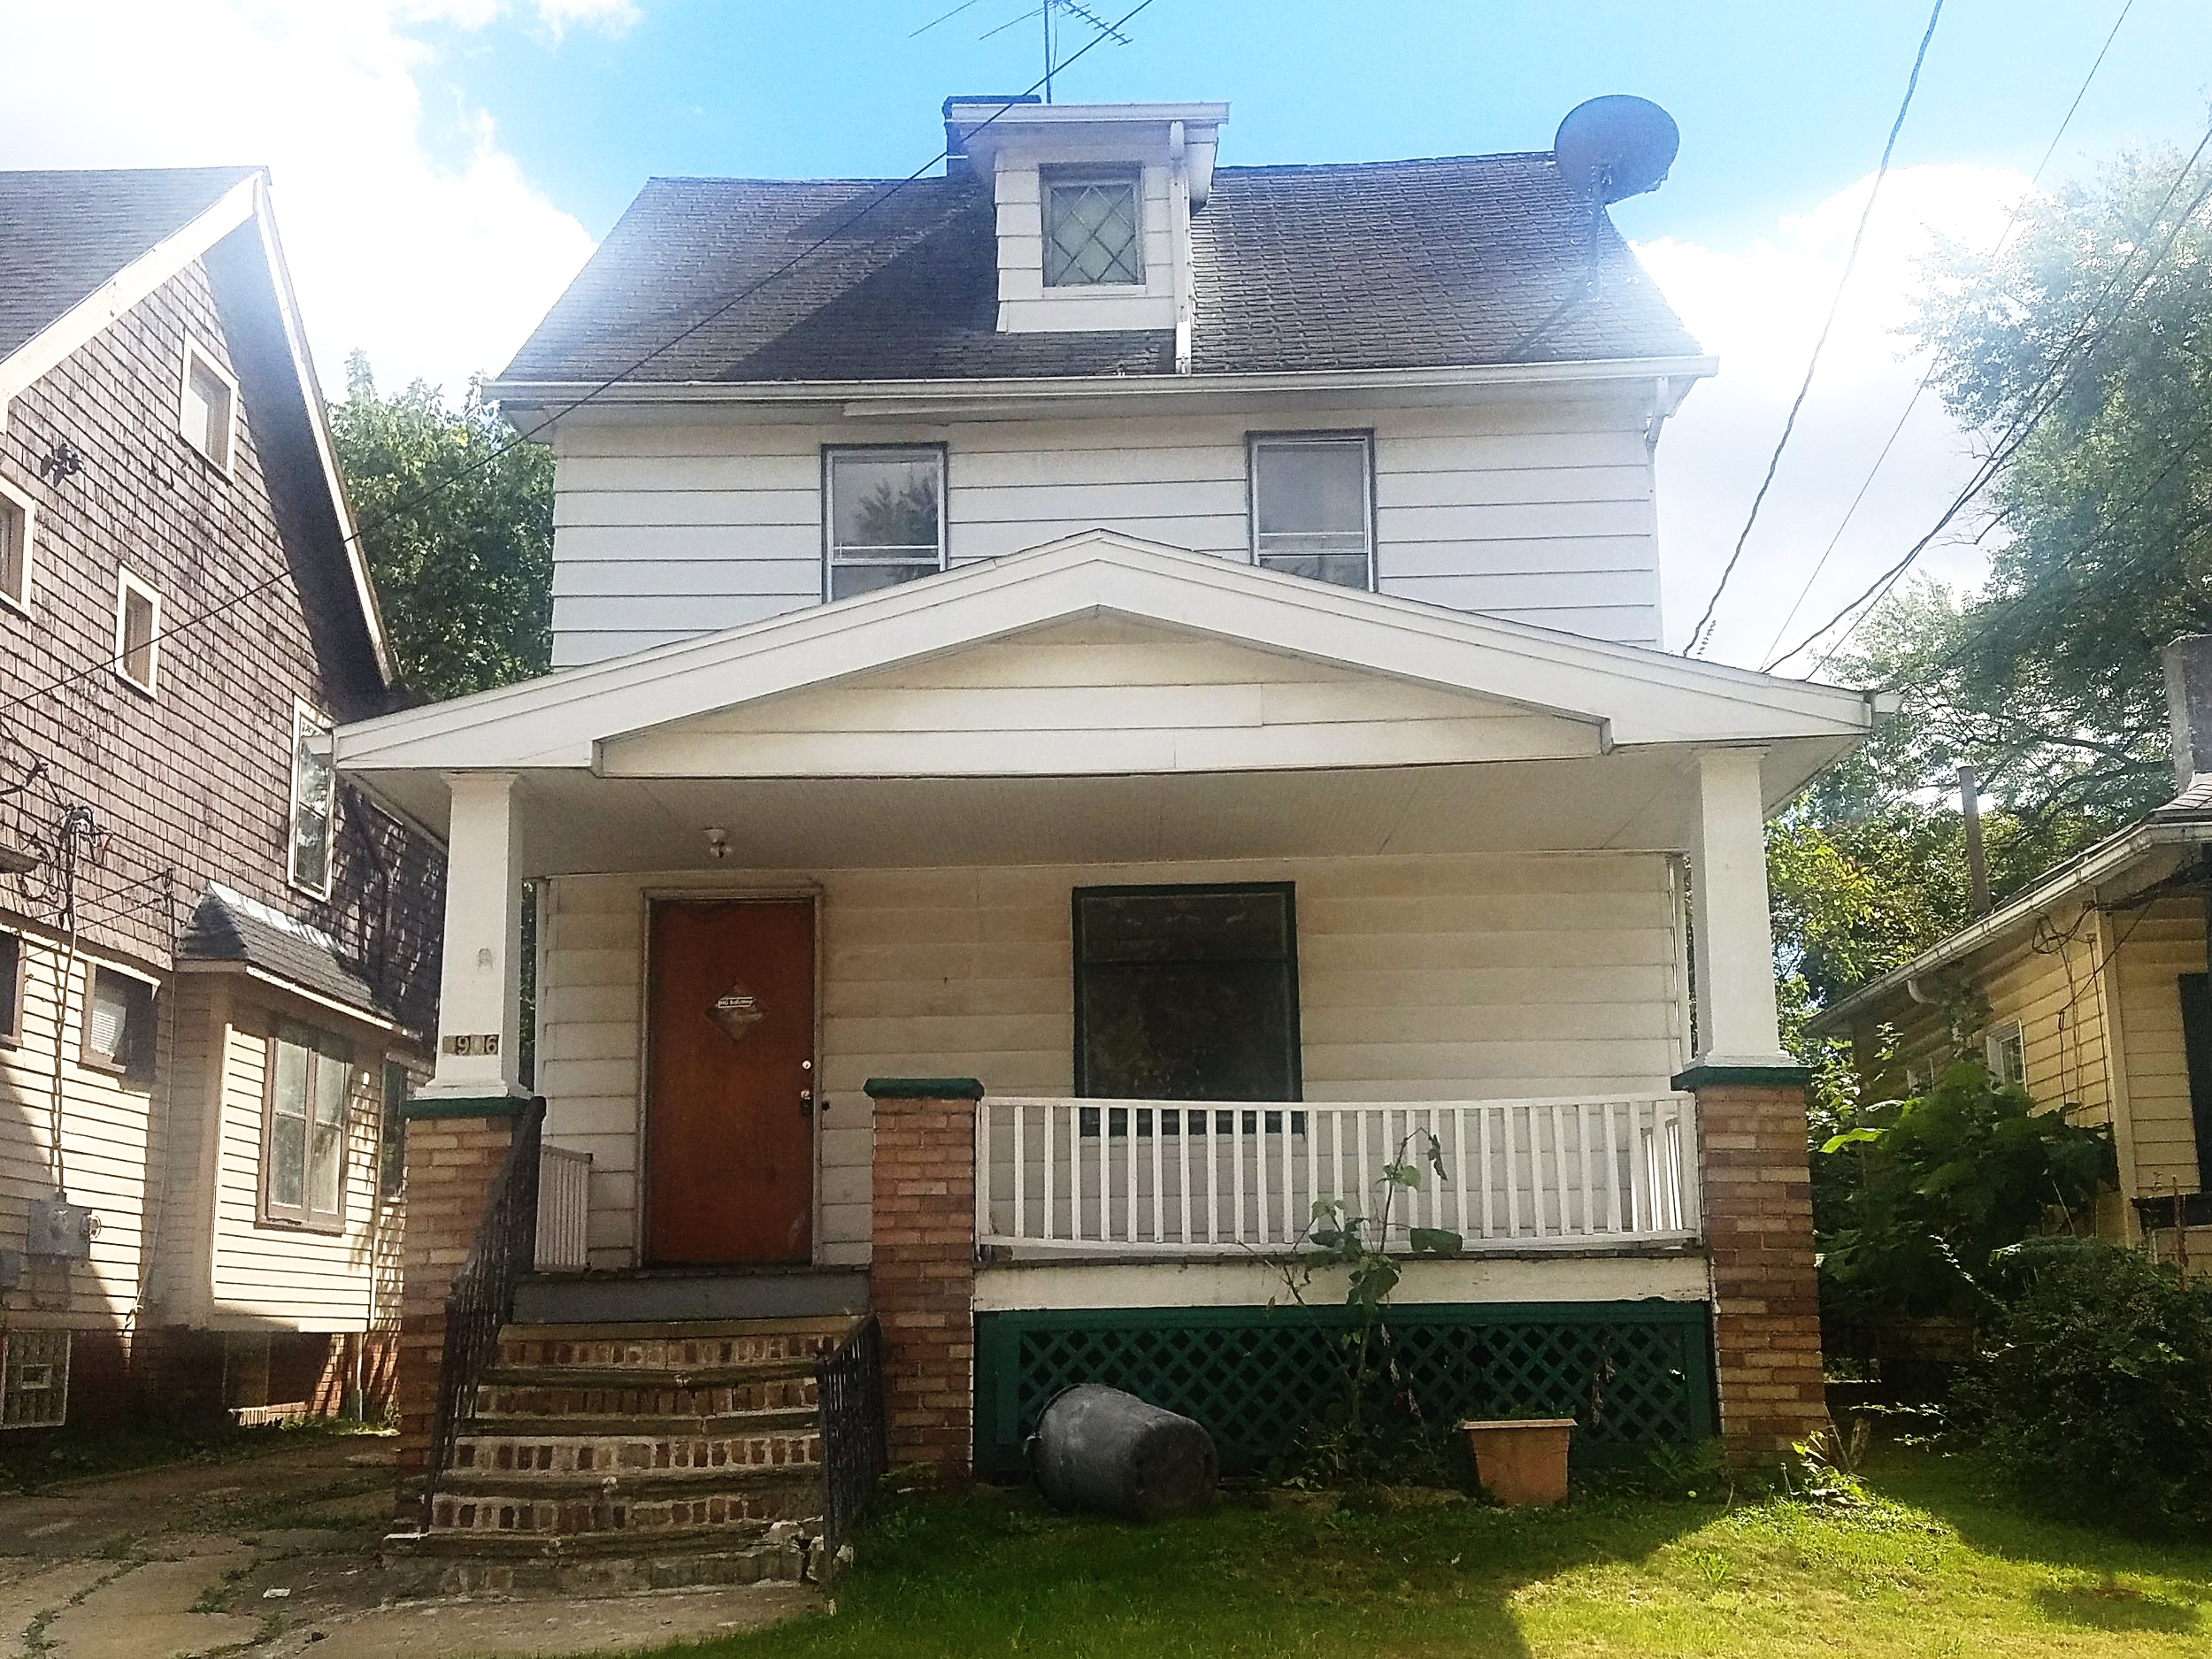 8906 Tioga Ave., Cleveland | 3 Bed 1 Bath | 1,115 Sq. Ft. | $14,800